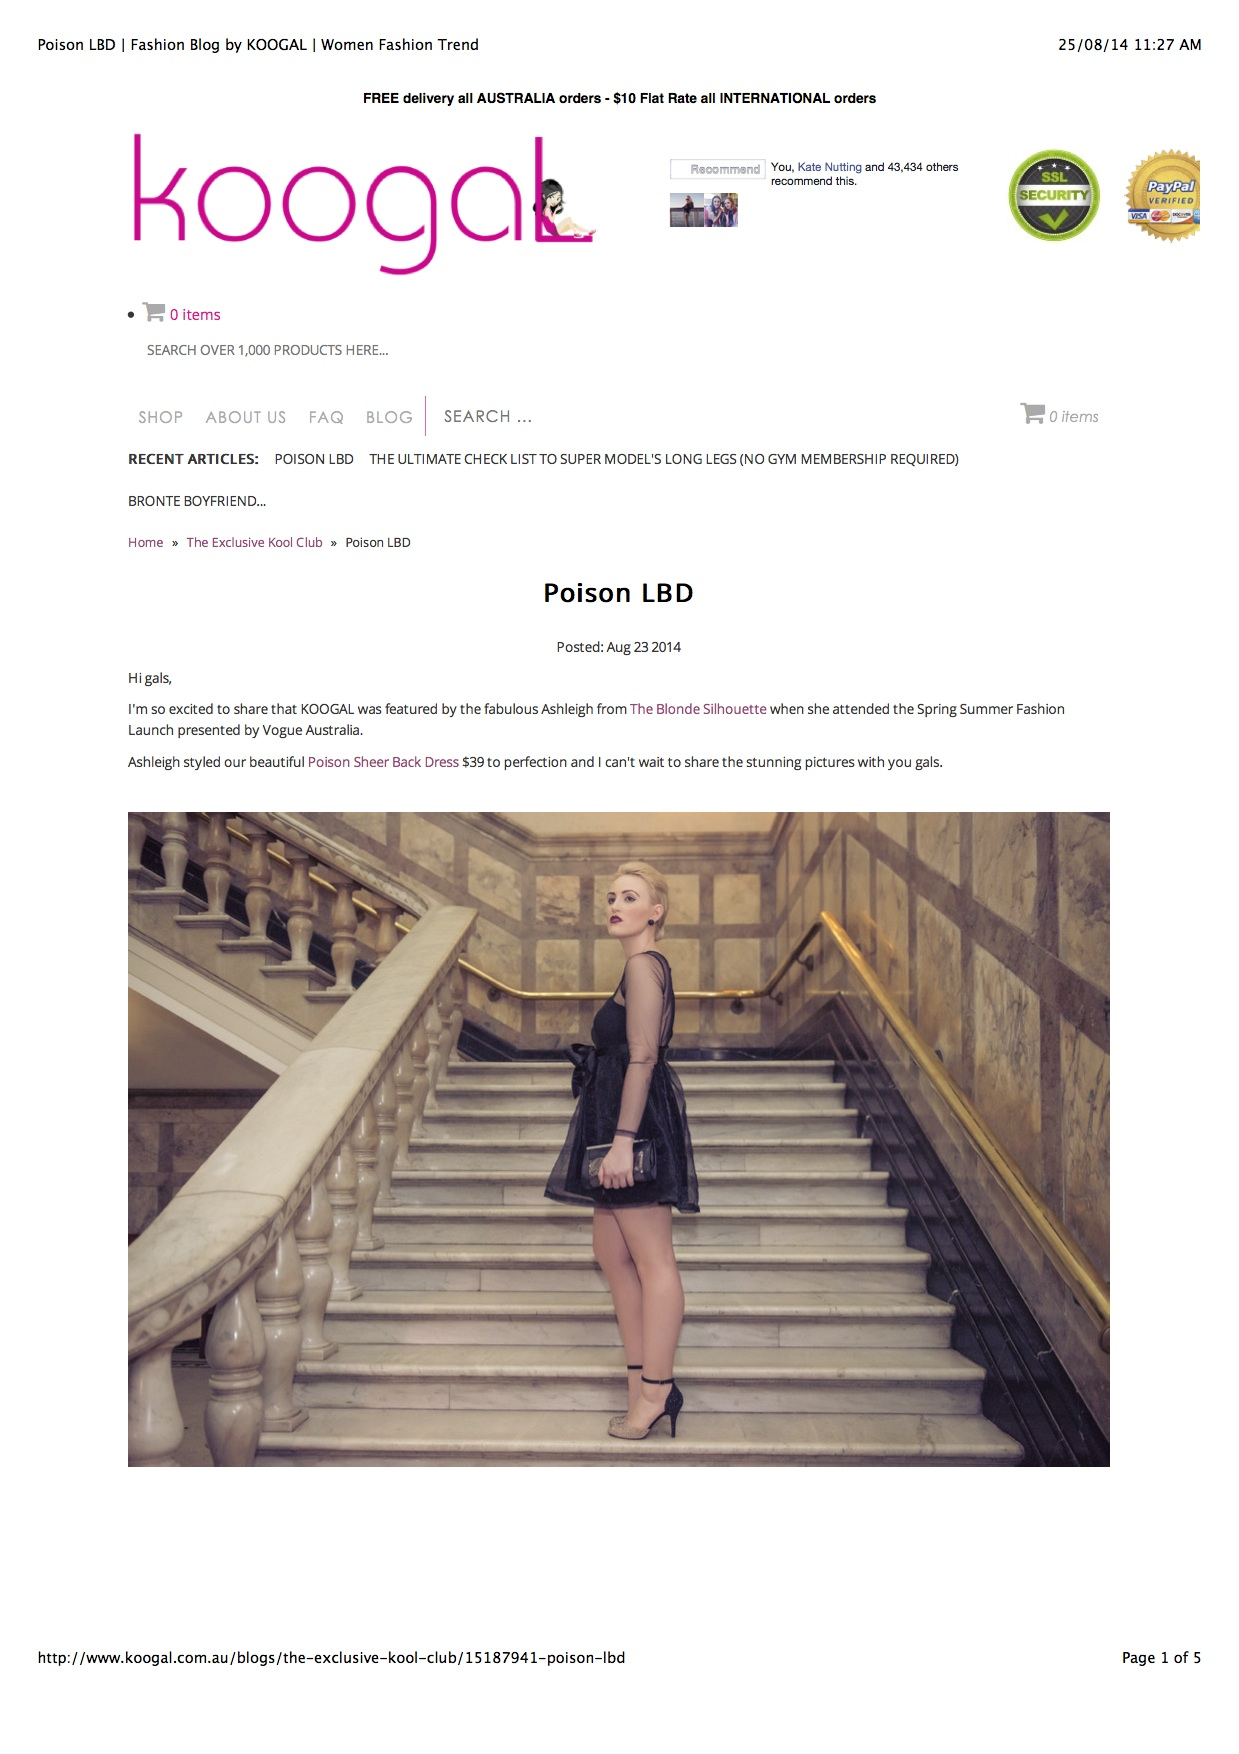 Poison LBD | Fashion Blog by KOOGAL | Women Fashion Trend copy